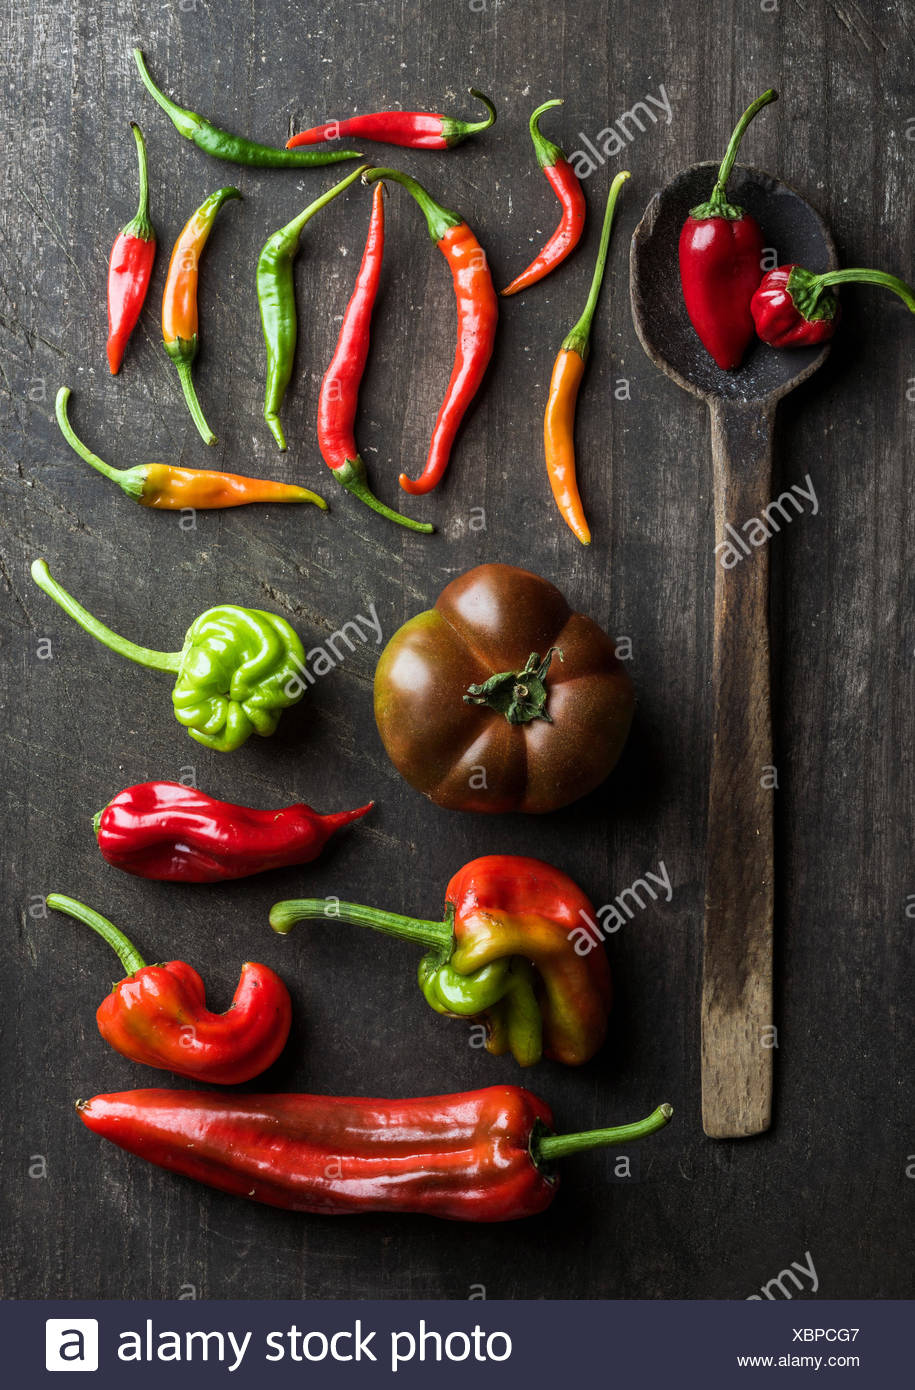 Red and green vegetables and rustic old spoon on dark wooden background, top view. Peppers, chilis and kumato tomatoes - Stock Image